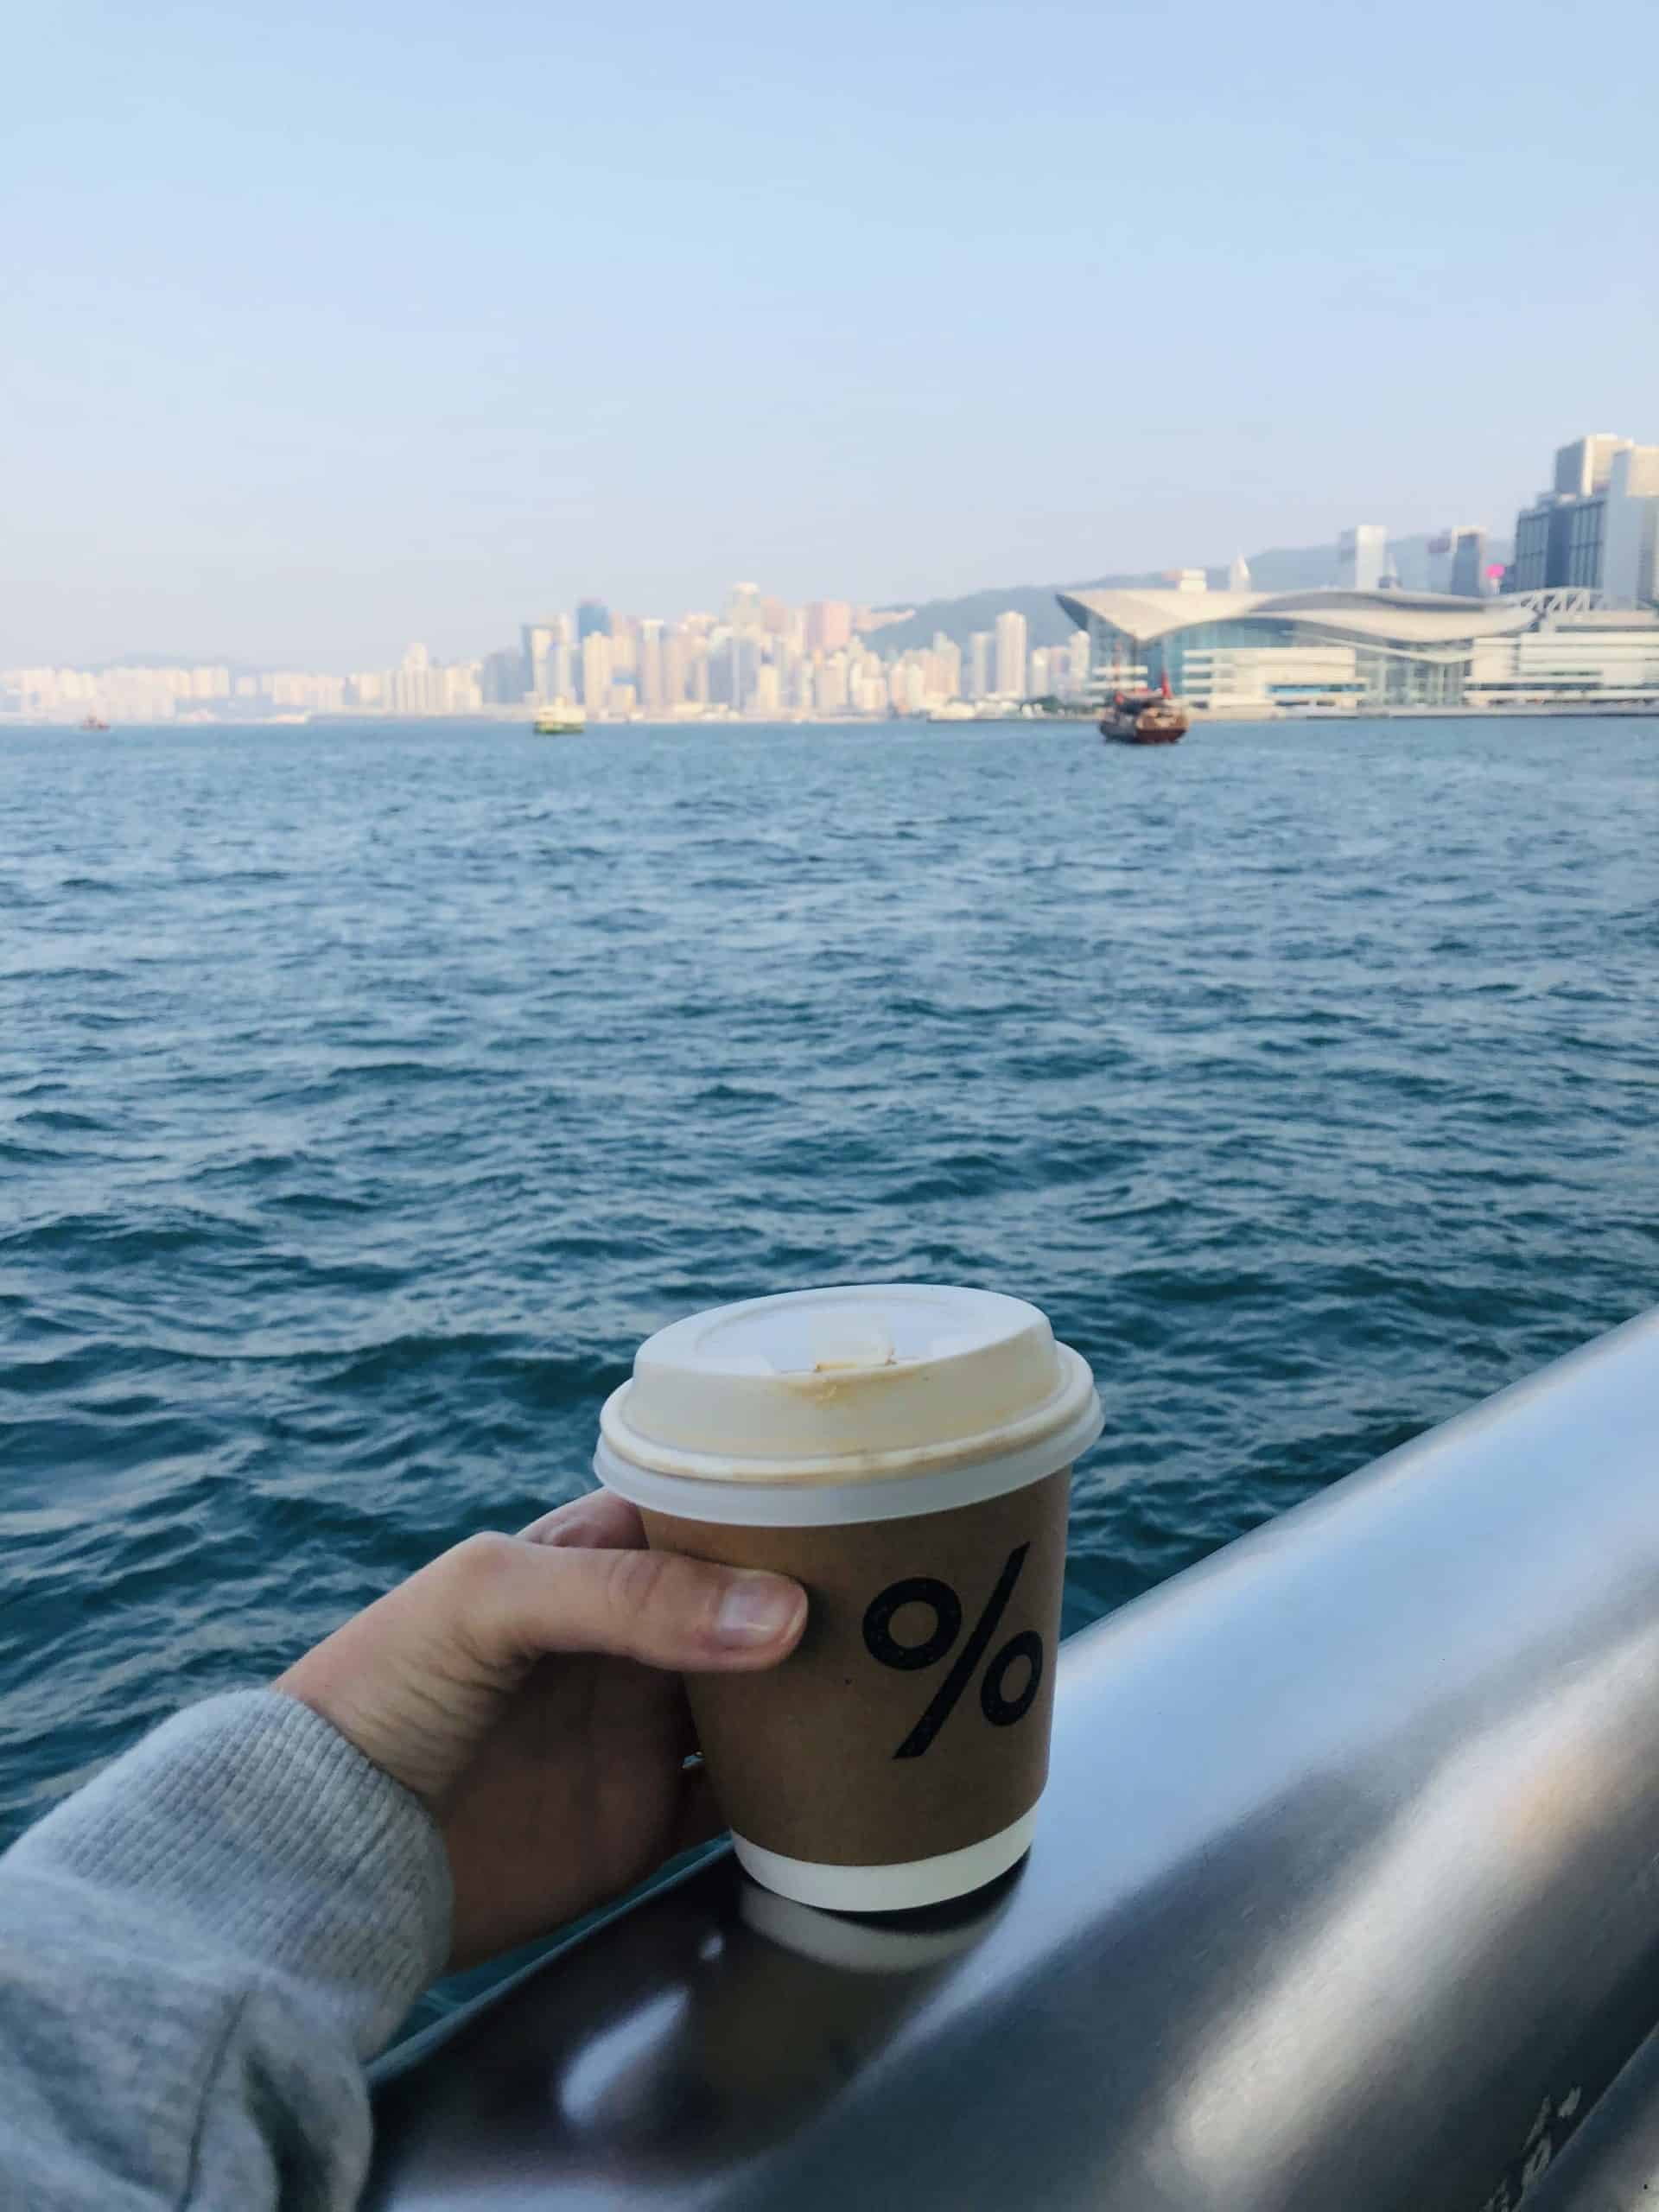 Looking to find the best coffee in Hong Kong? Check out my list of the places I like most. Not only amazing quality coffee but also some Instagrammable Hong Kong cafes. NOC coffee Hong Kong, Coffee Academics Hong Kong, and much more Hong Kong coffee shops to try. #hongkong #coffee